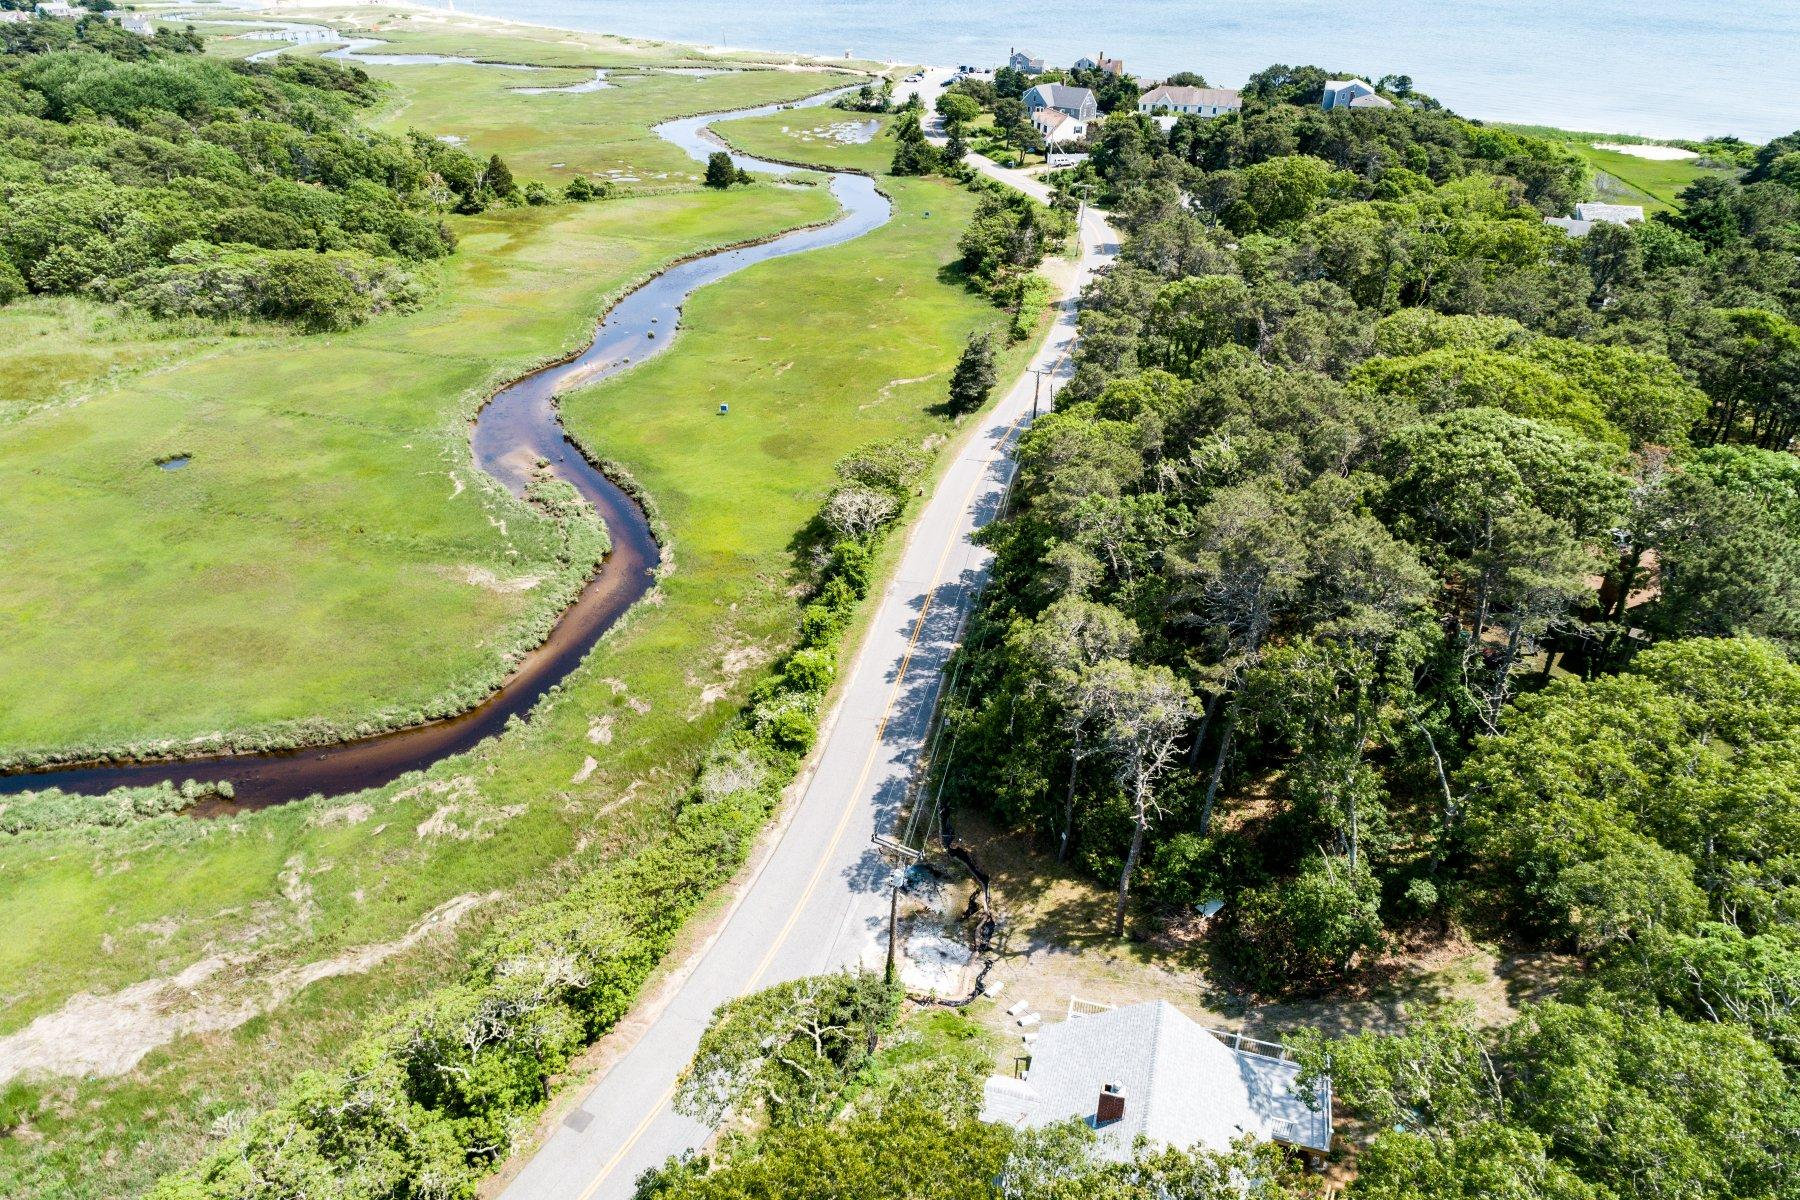 Land for Sale at 314 Cockle Cove Road, Chatham, MA 314 Cockle Cove Road Chatham, Massachusetts 02659 United States